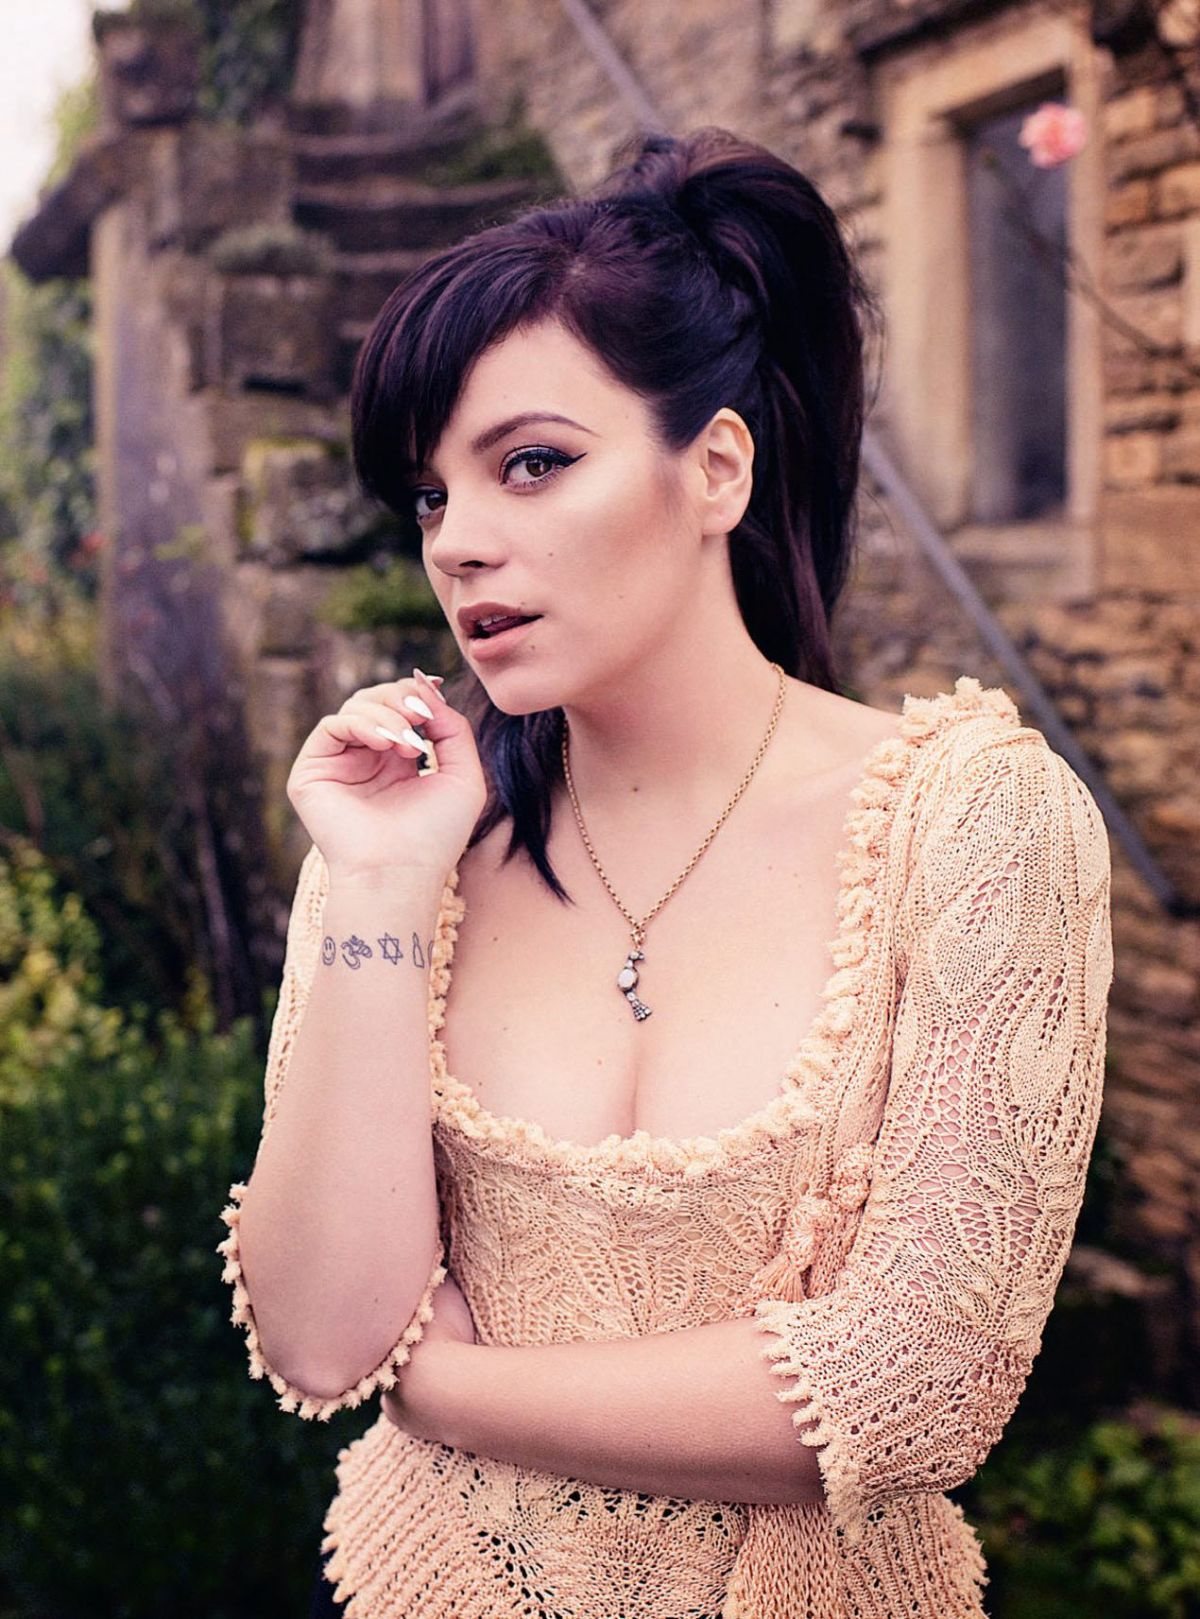 LILY ALLEN in Esquire Magazine - HawtCelebs - HawtCelebs Lily Allen